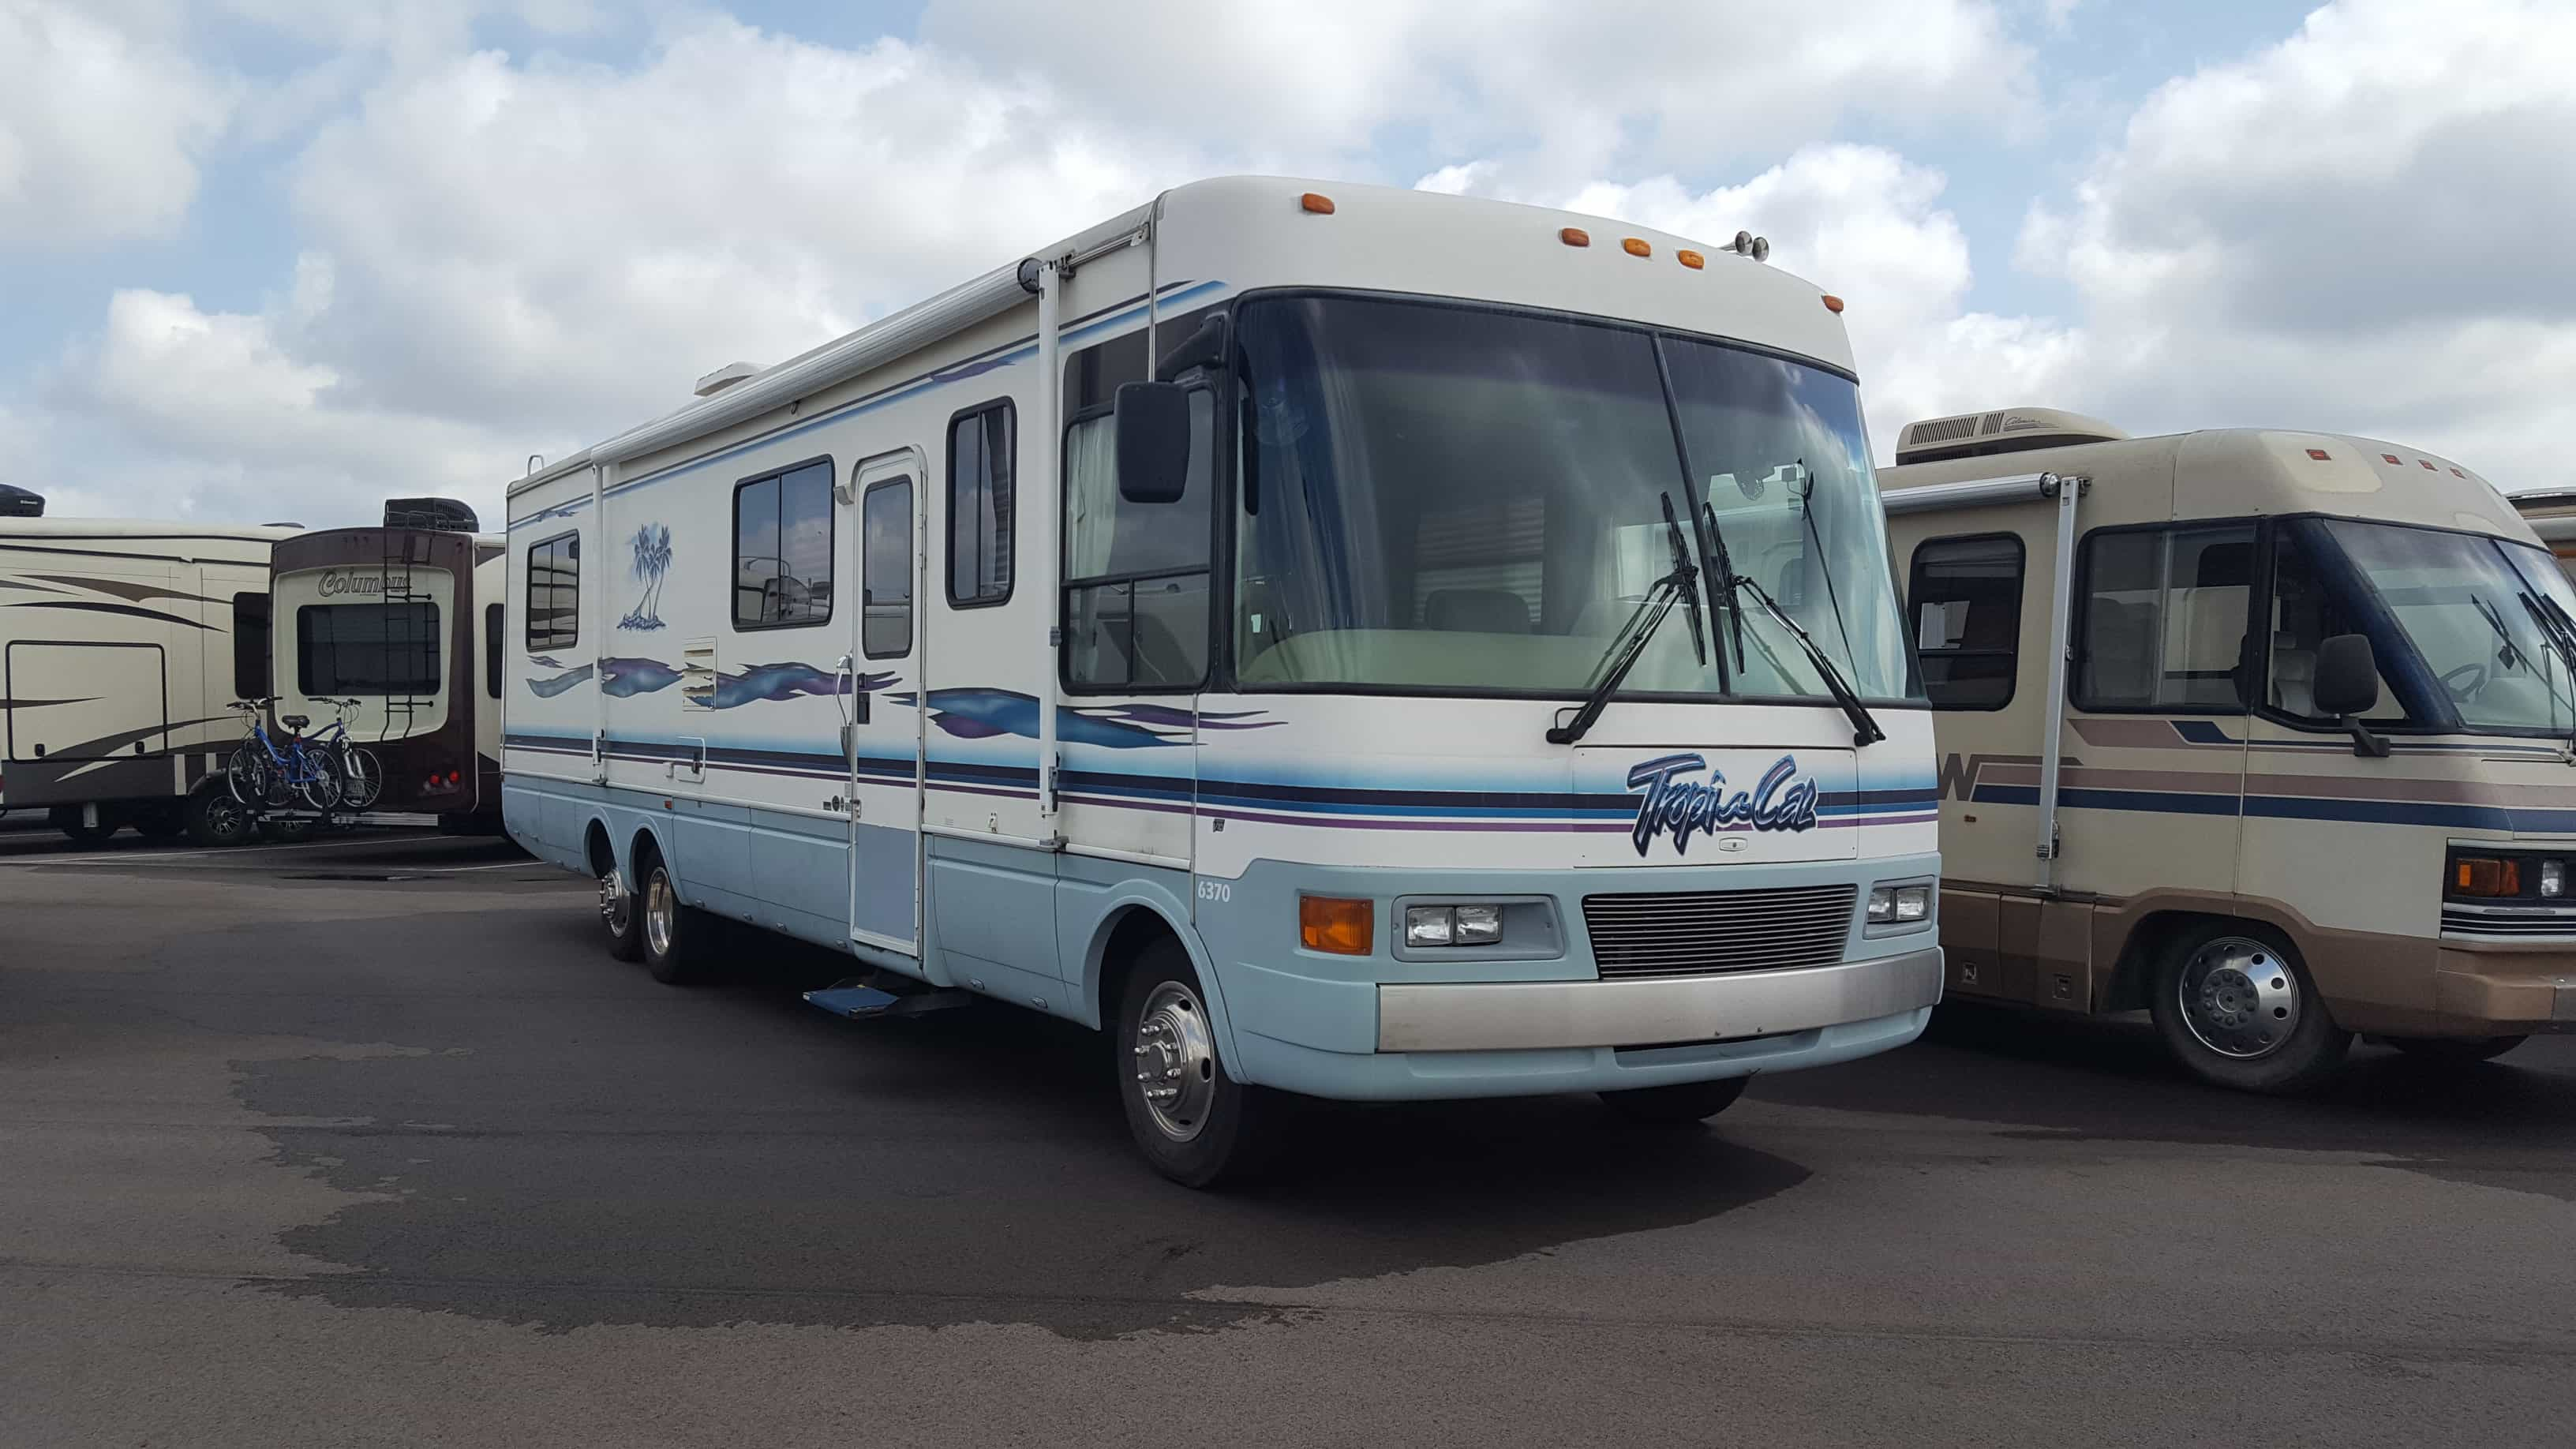 USED 1999 National Rv TROPI-CAL 6370 - American RV